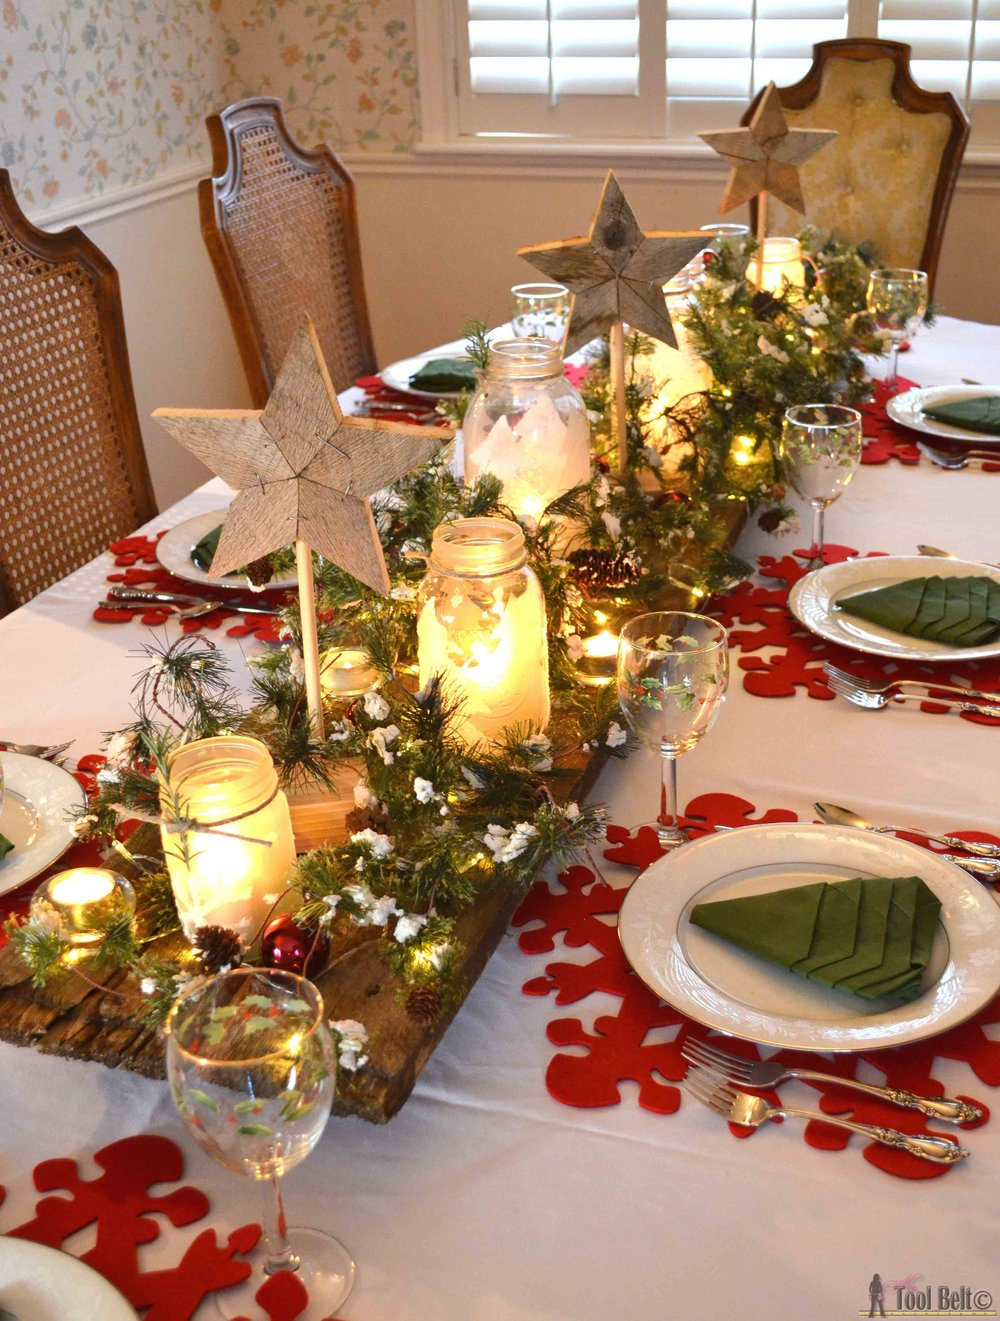 3. Candles - Set the mood this Christmas with candles! Opt for unscented candles, so the aromas don't interfere with the smells of your delicious meal! Candles are essential for creating a welcoming and relaxing space for guests!